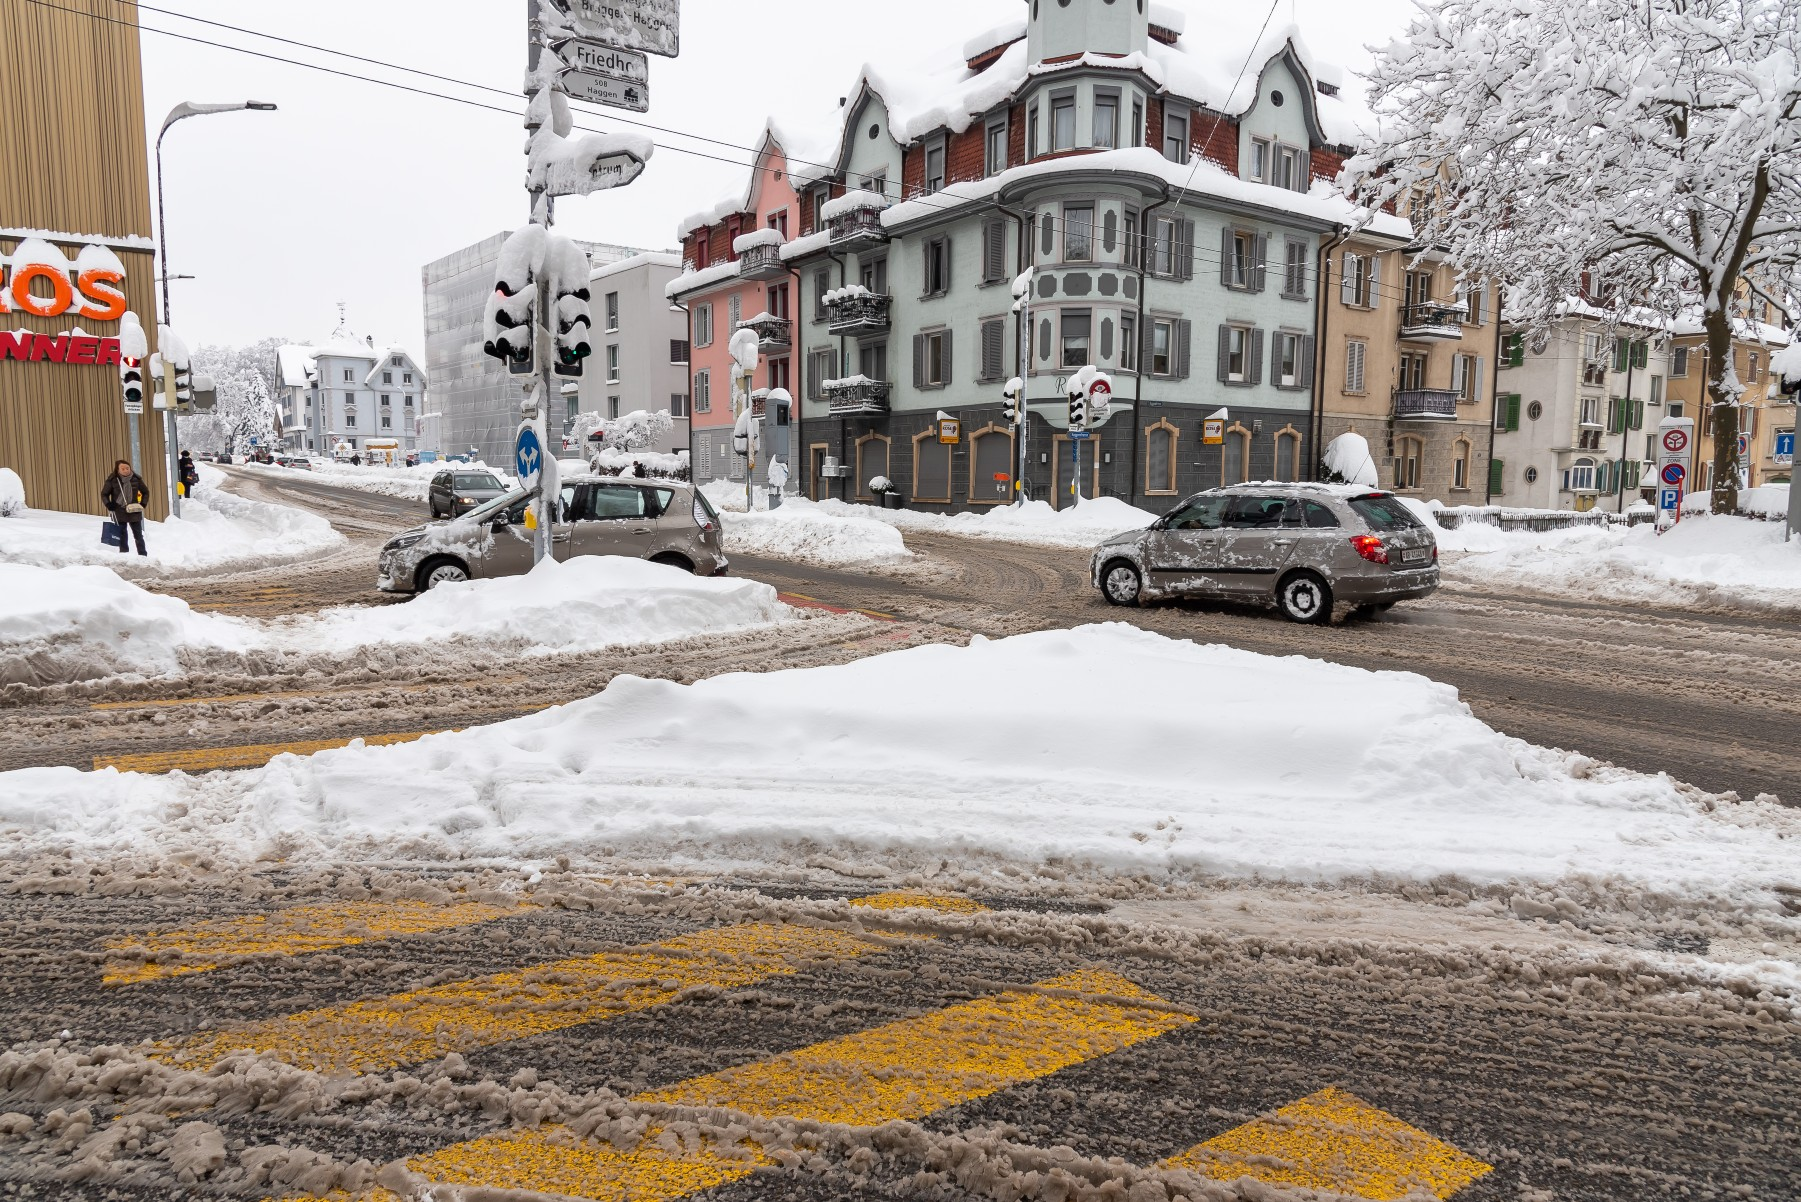 cars driving in snow in Swiss city streets